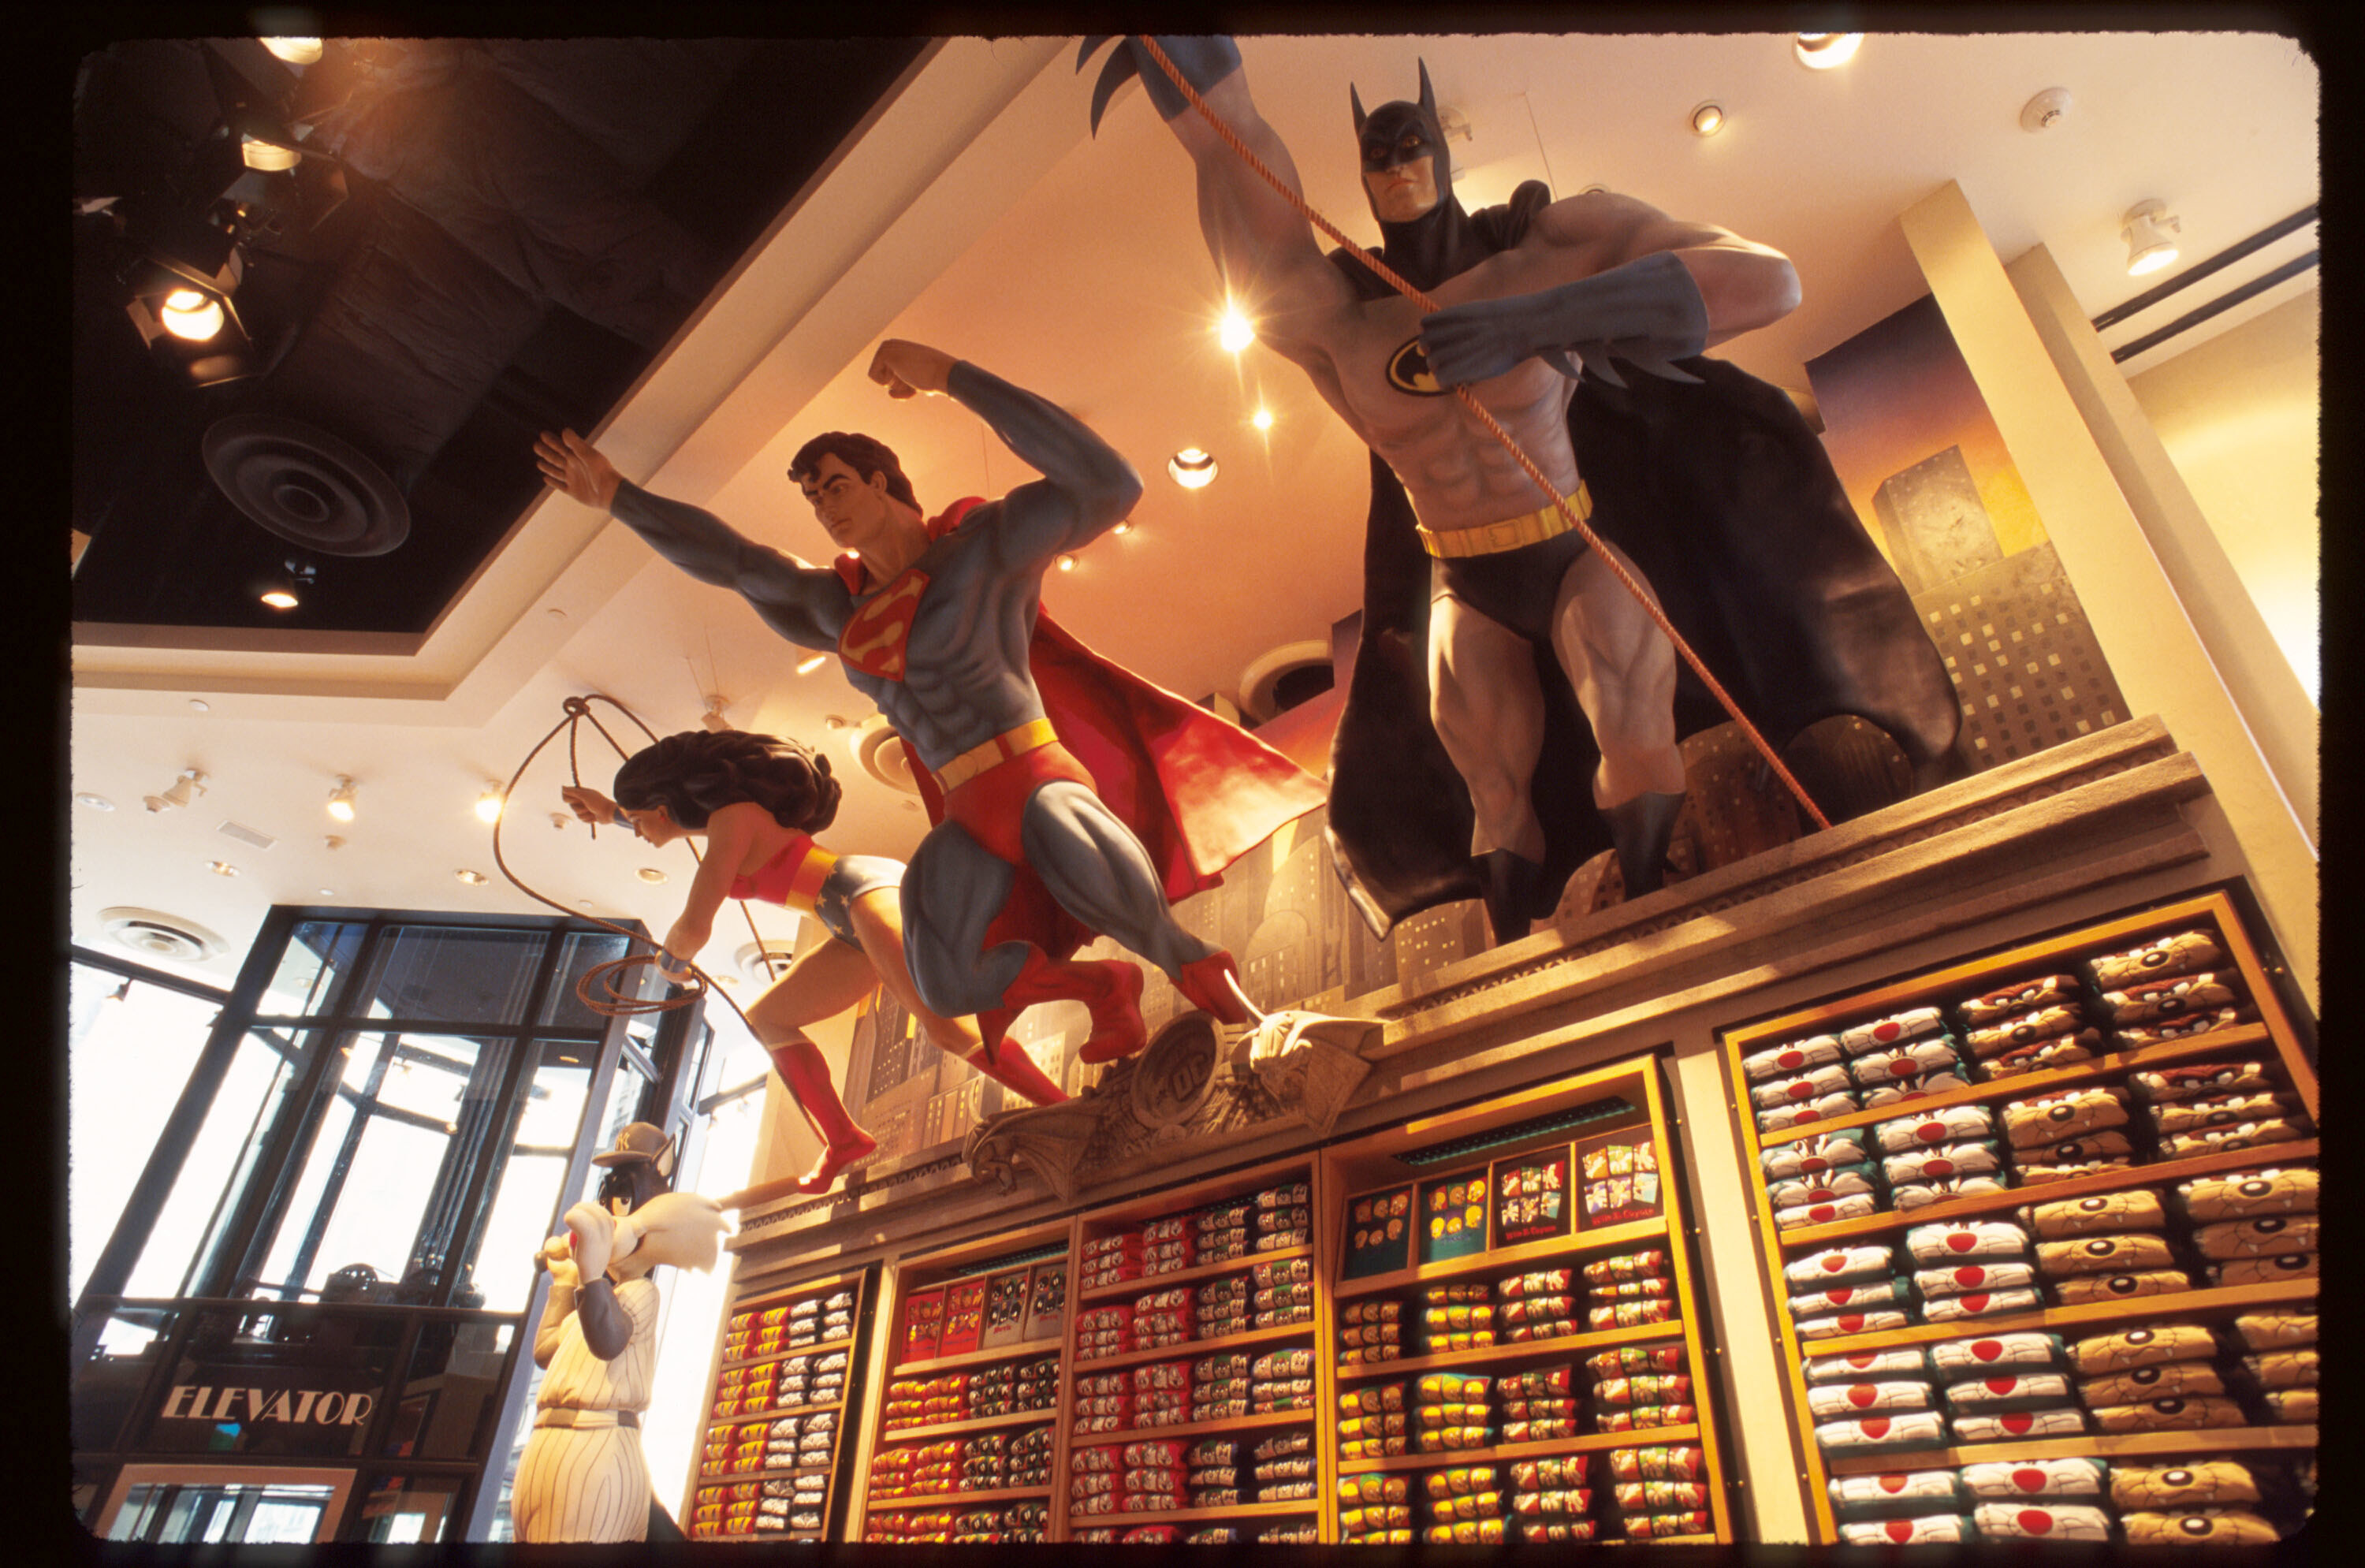 Large statues of Wonder Woman, Superman, and Batman leaping out of the wall inside a Warner Bros. Studio Store.